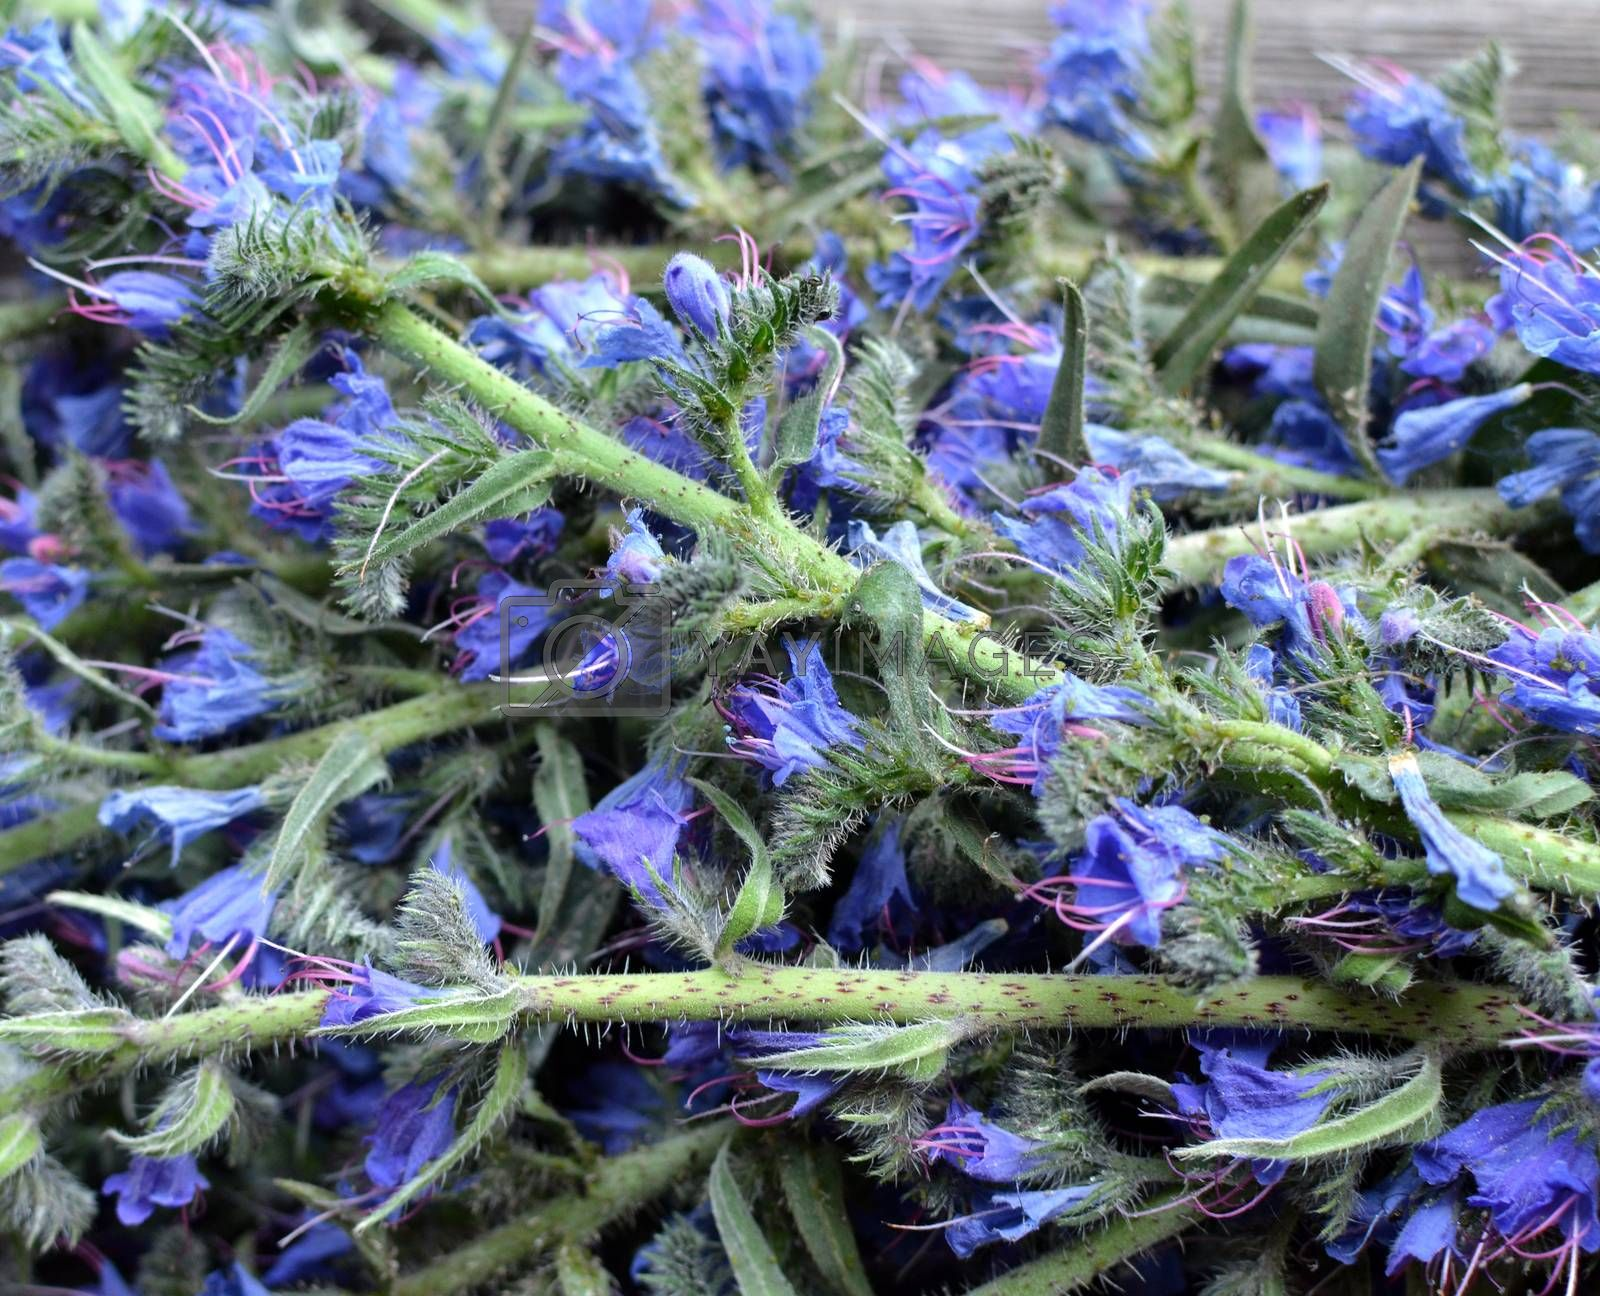 Inflorescences of the viper's bugloss medicinal plant in a heap